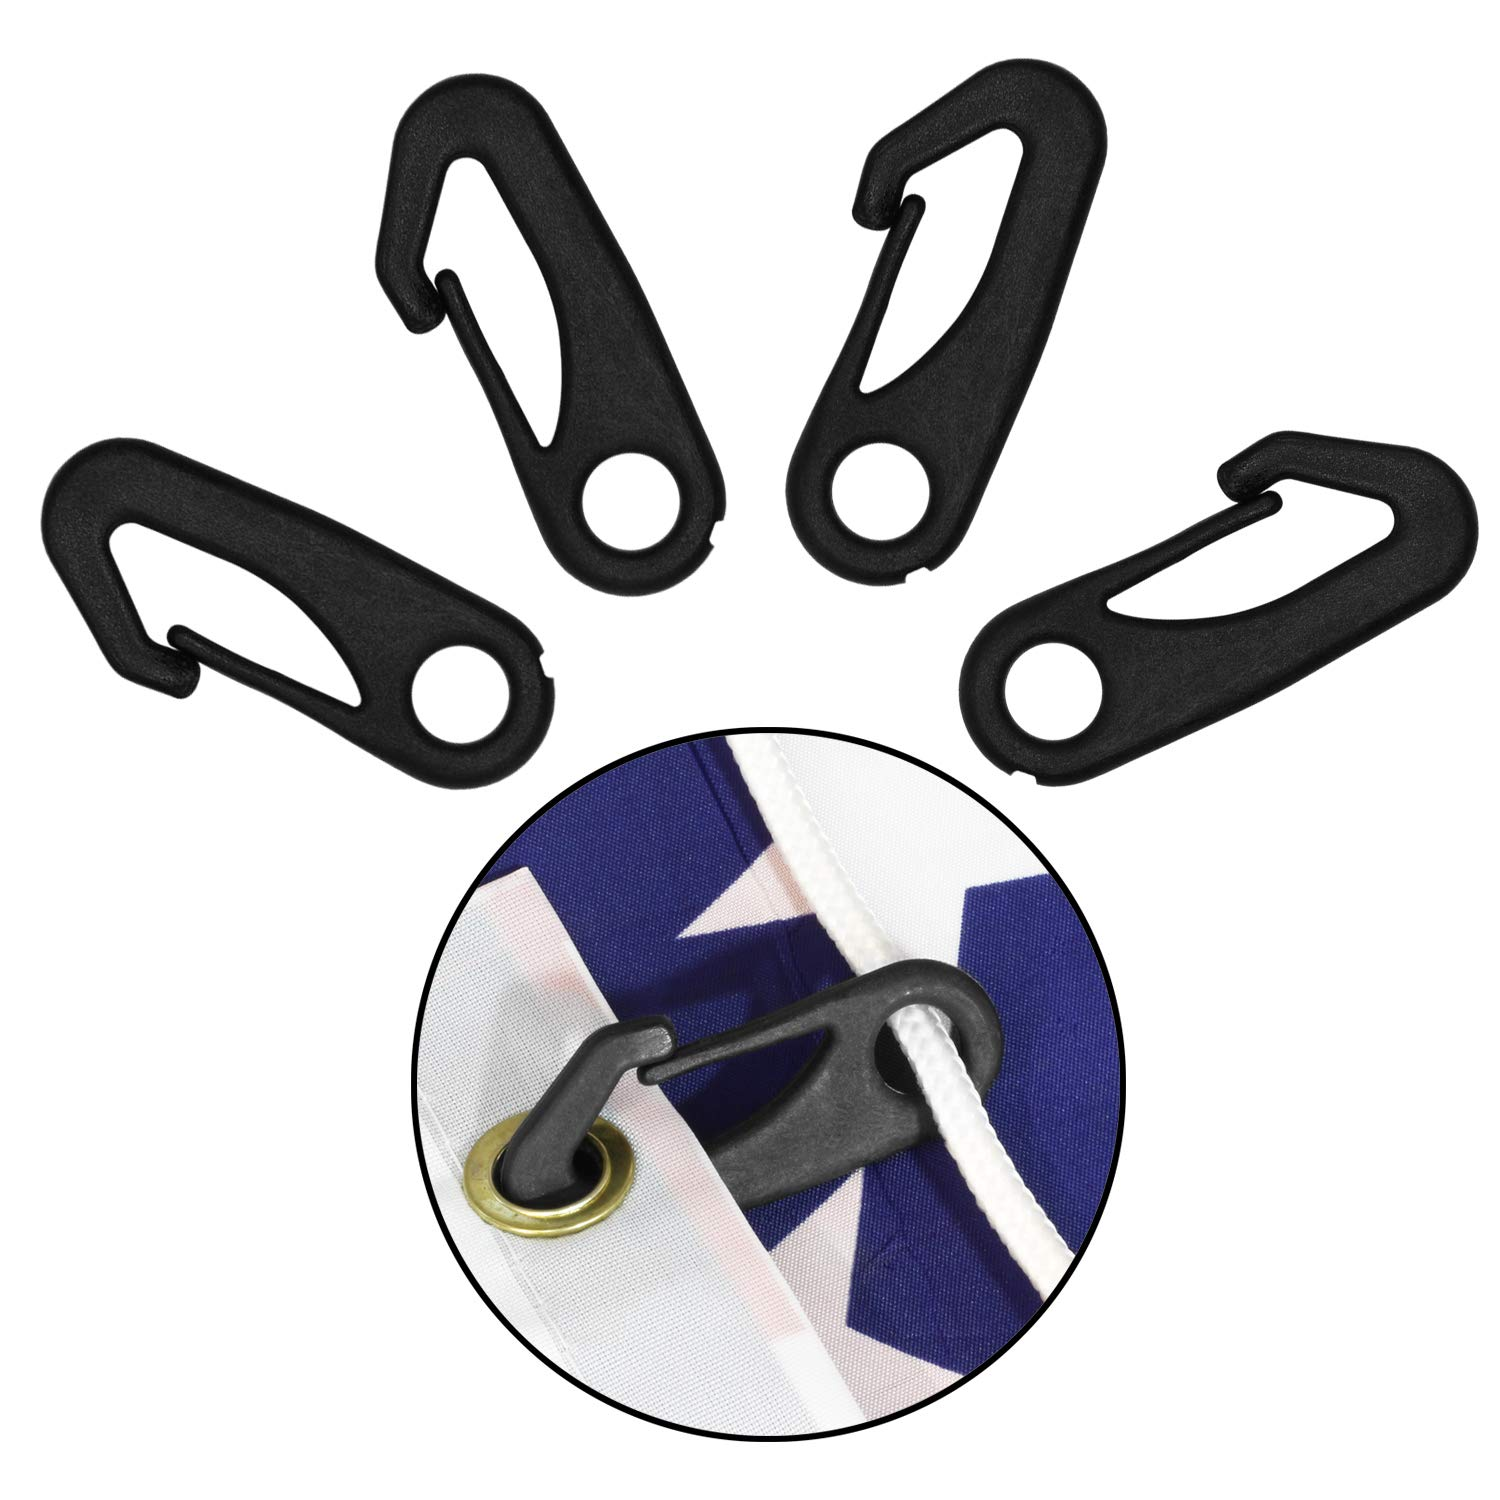 Black Anley 4 PCS Heavy Duty Flagpole Snap Hook Clips Attach Flag Grommets to Halyard Rope Flag Pole Attachment Accessory